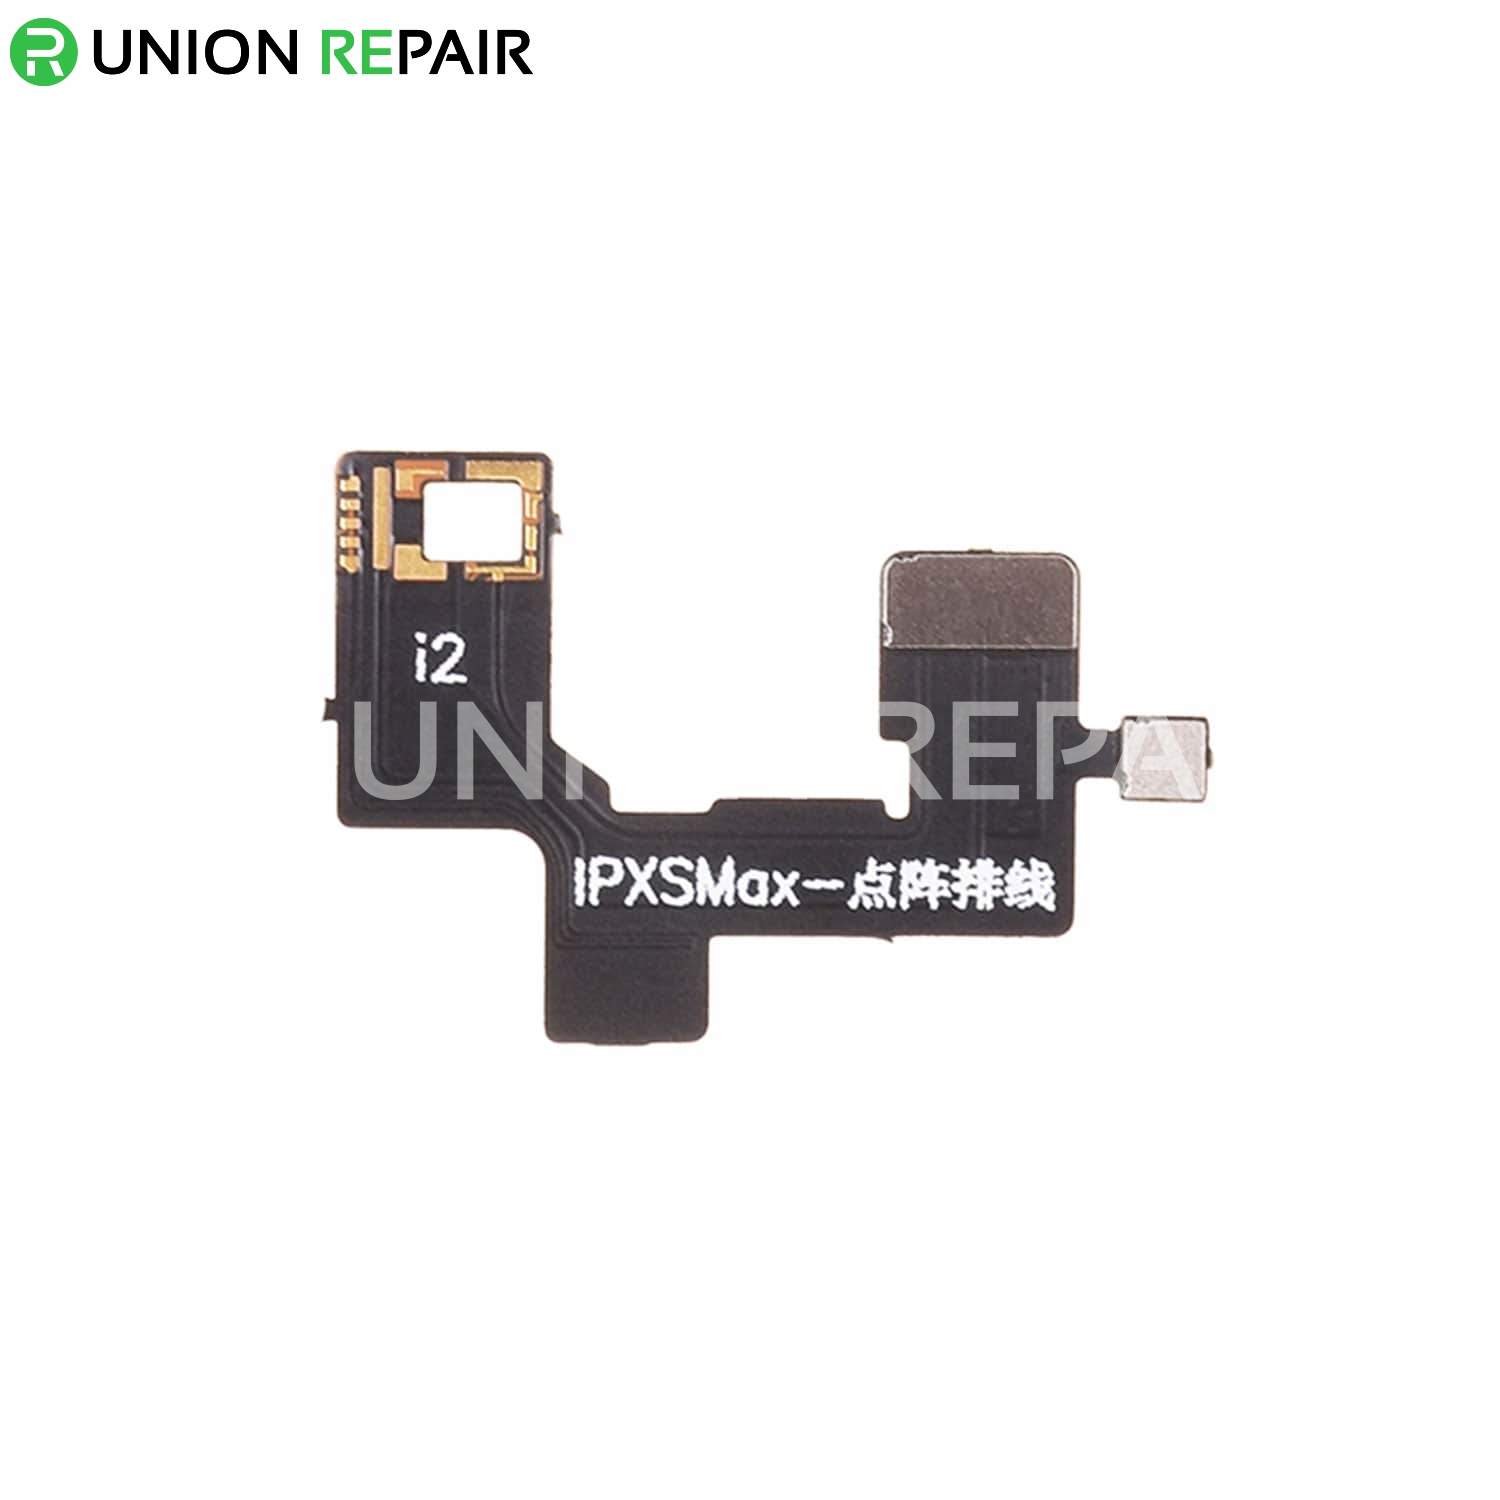 i2C FACE ID V8 Programmer Fixture for iPhone X/XS/XsMax/XR/11/11Pro/11ProMax, Condition: Cable for iPhone Xs Max